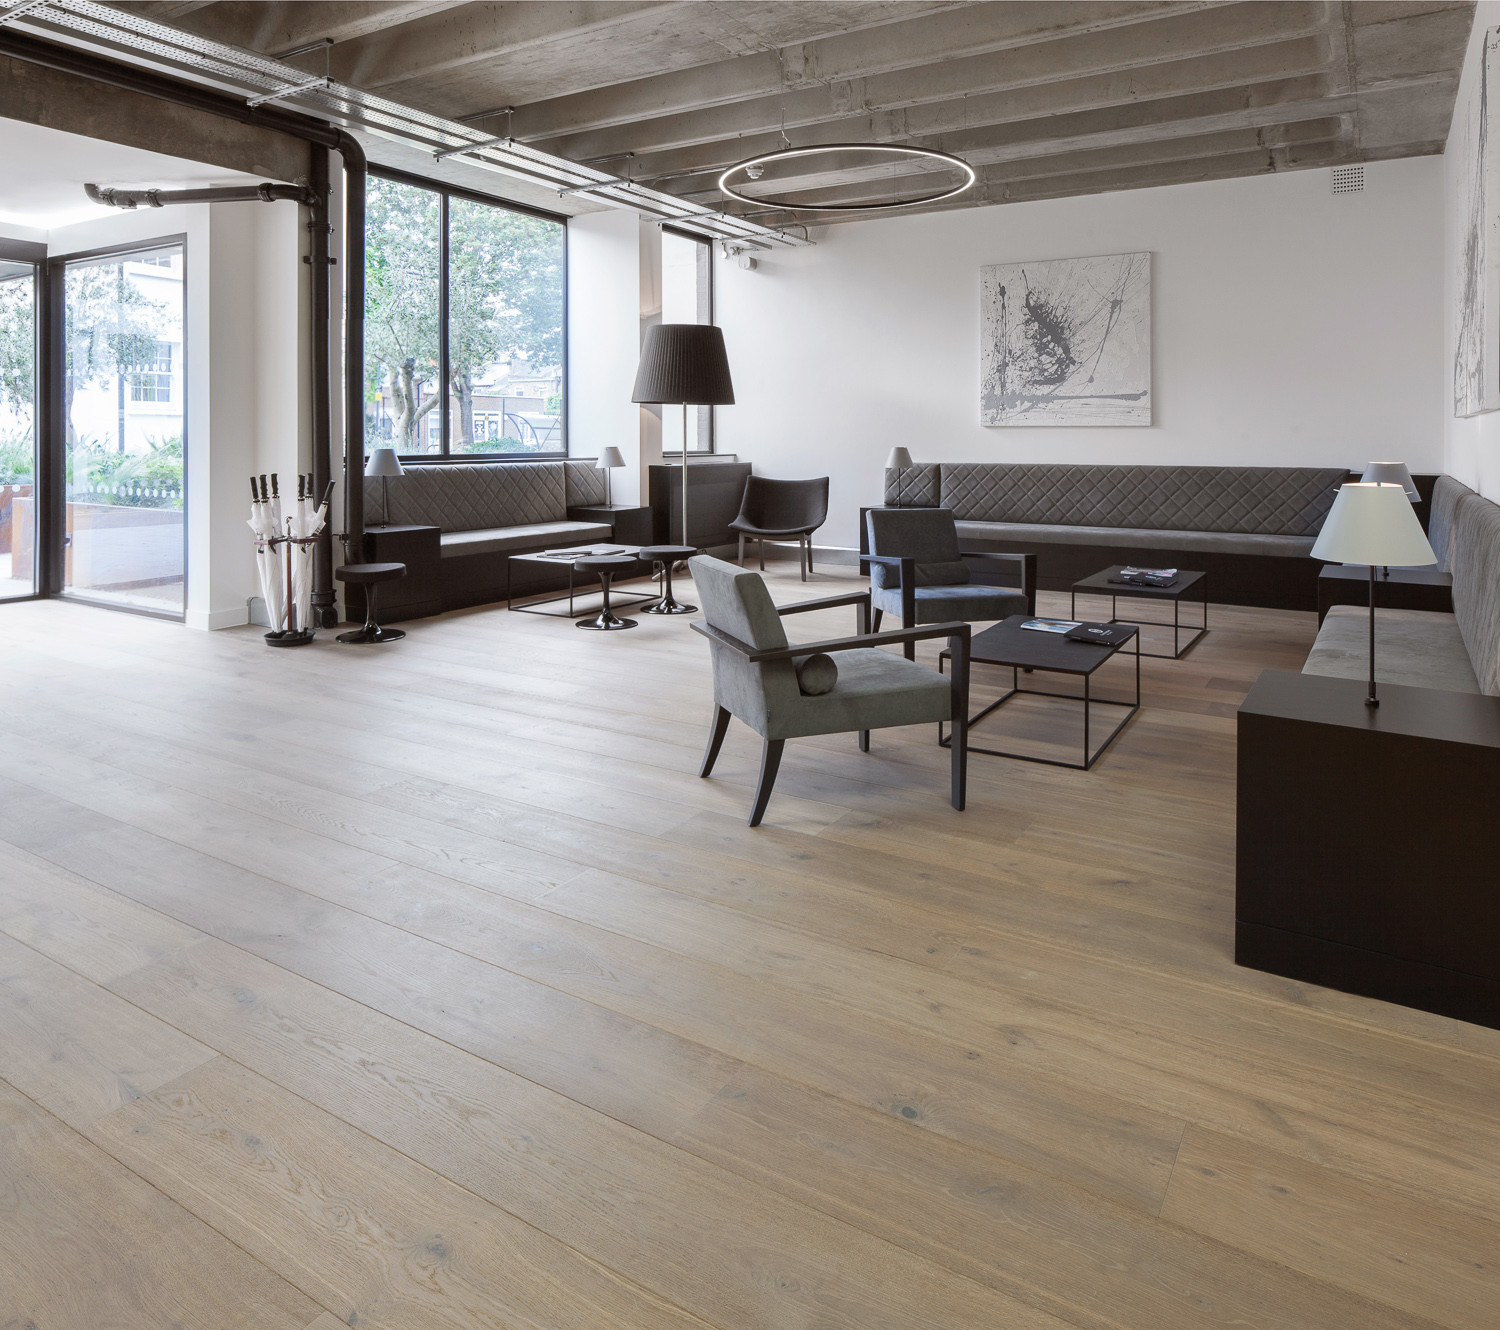 Hardwood Floor In Bathroom Smells Like Urine Of Blog Archives the New Reclaimed Flooring Companythe New within the Report Indicated that 82 Of Workers who Were Employed In Places with Eight or More Wood Surfaces Had Higher Personal Productivity Mood Concentration